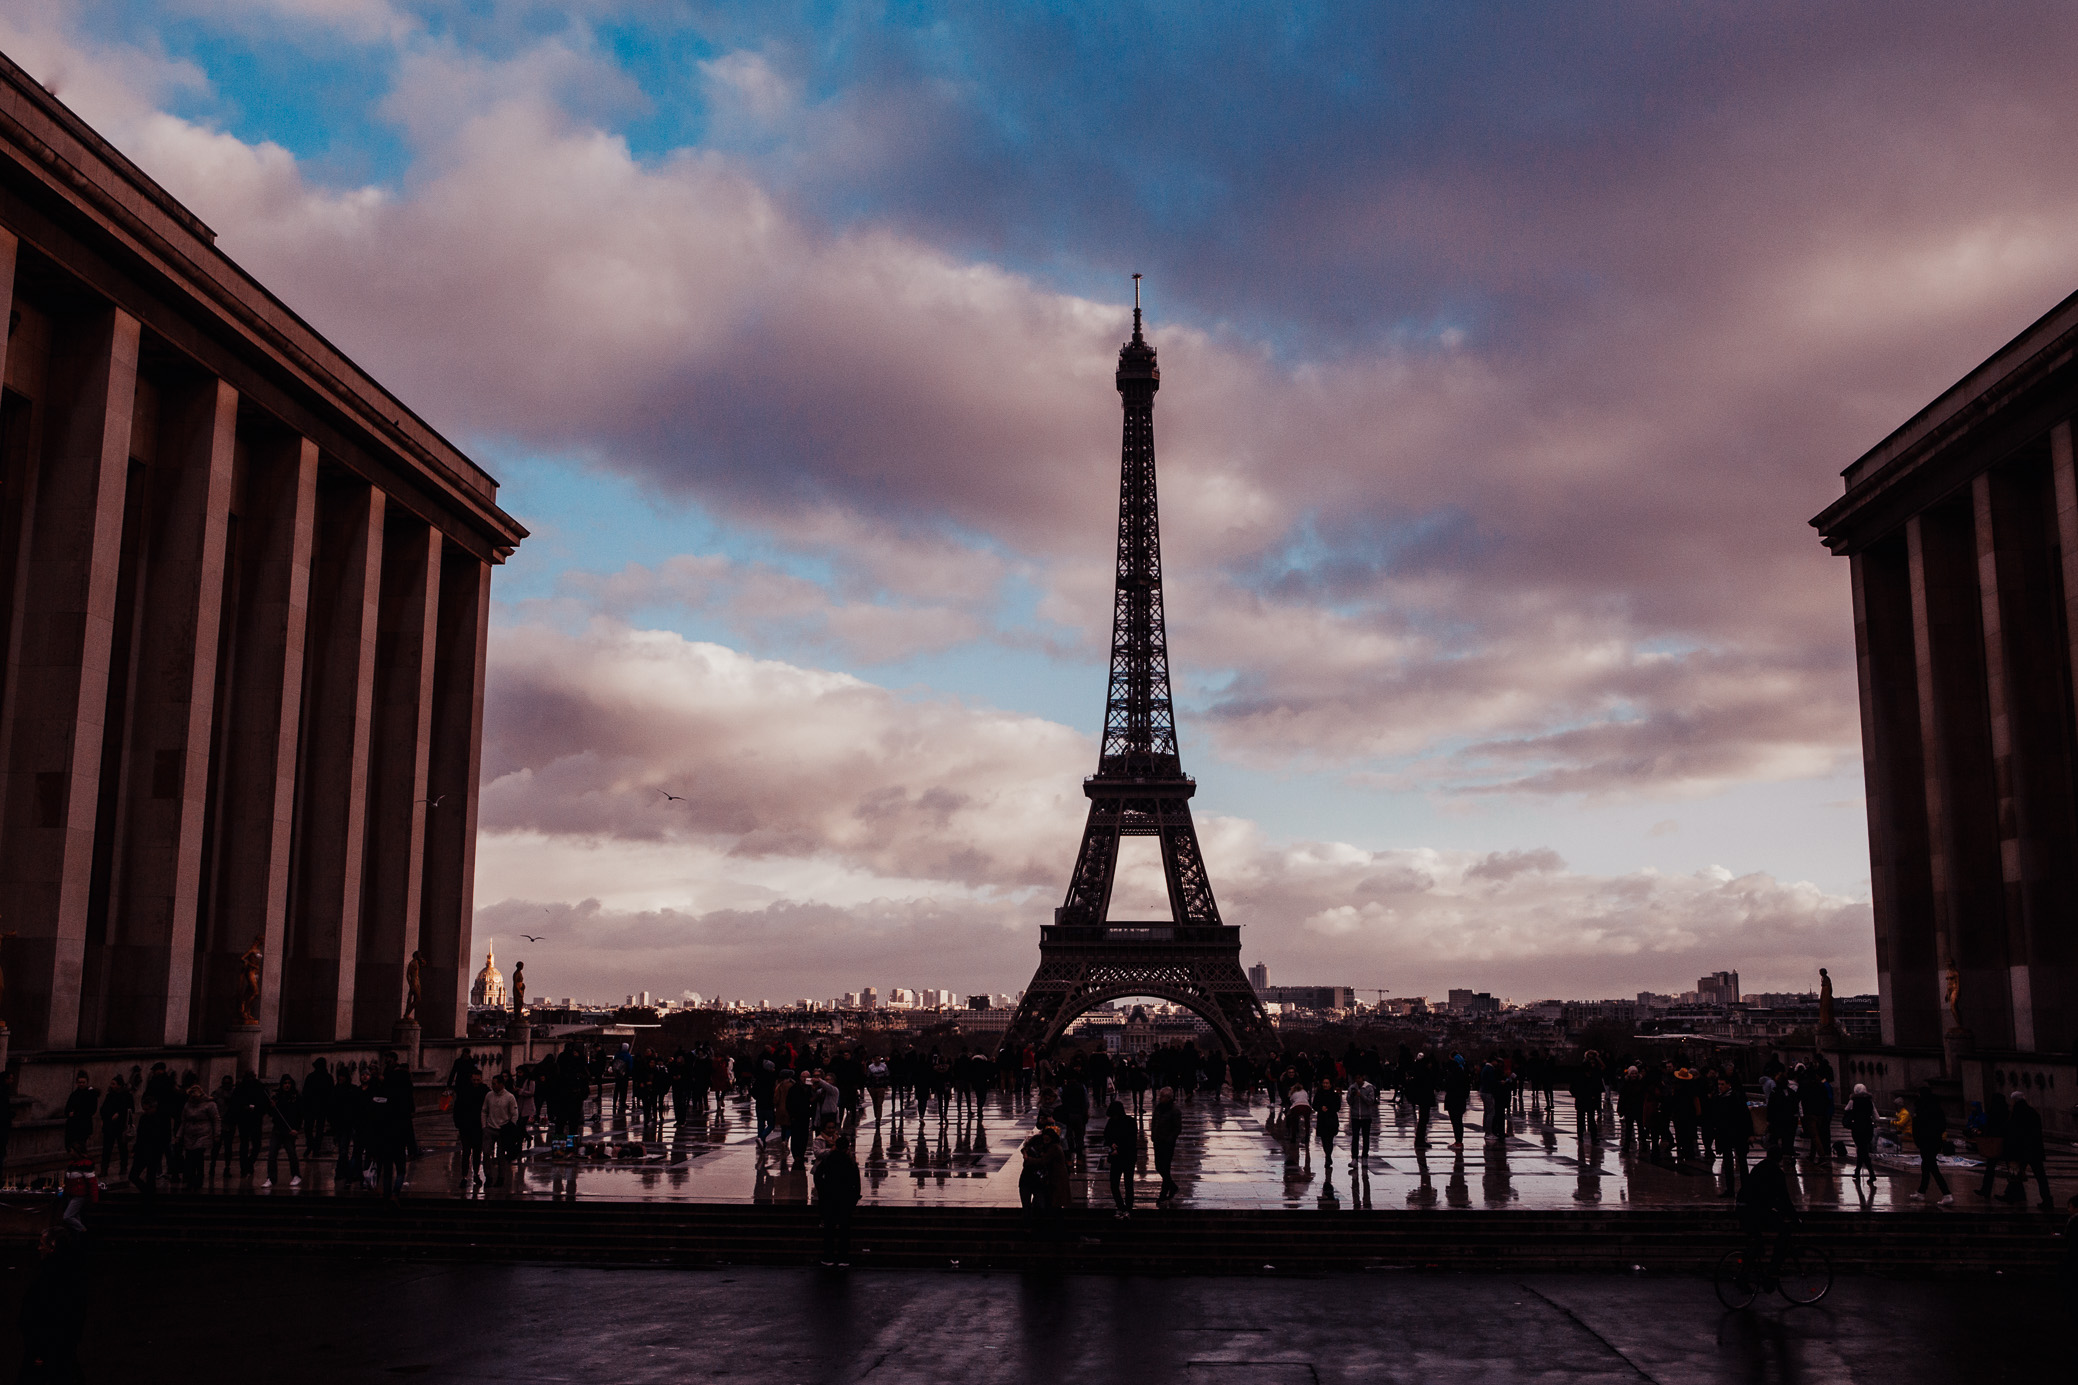 The Eiffel Tower | Paris, France | December 9th, 2018 | (Photo by David A. Smith / DSmithScenes)